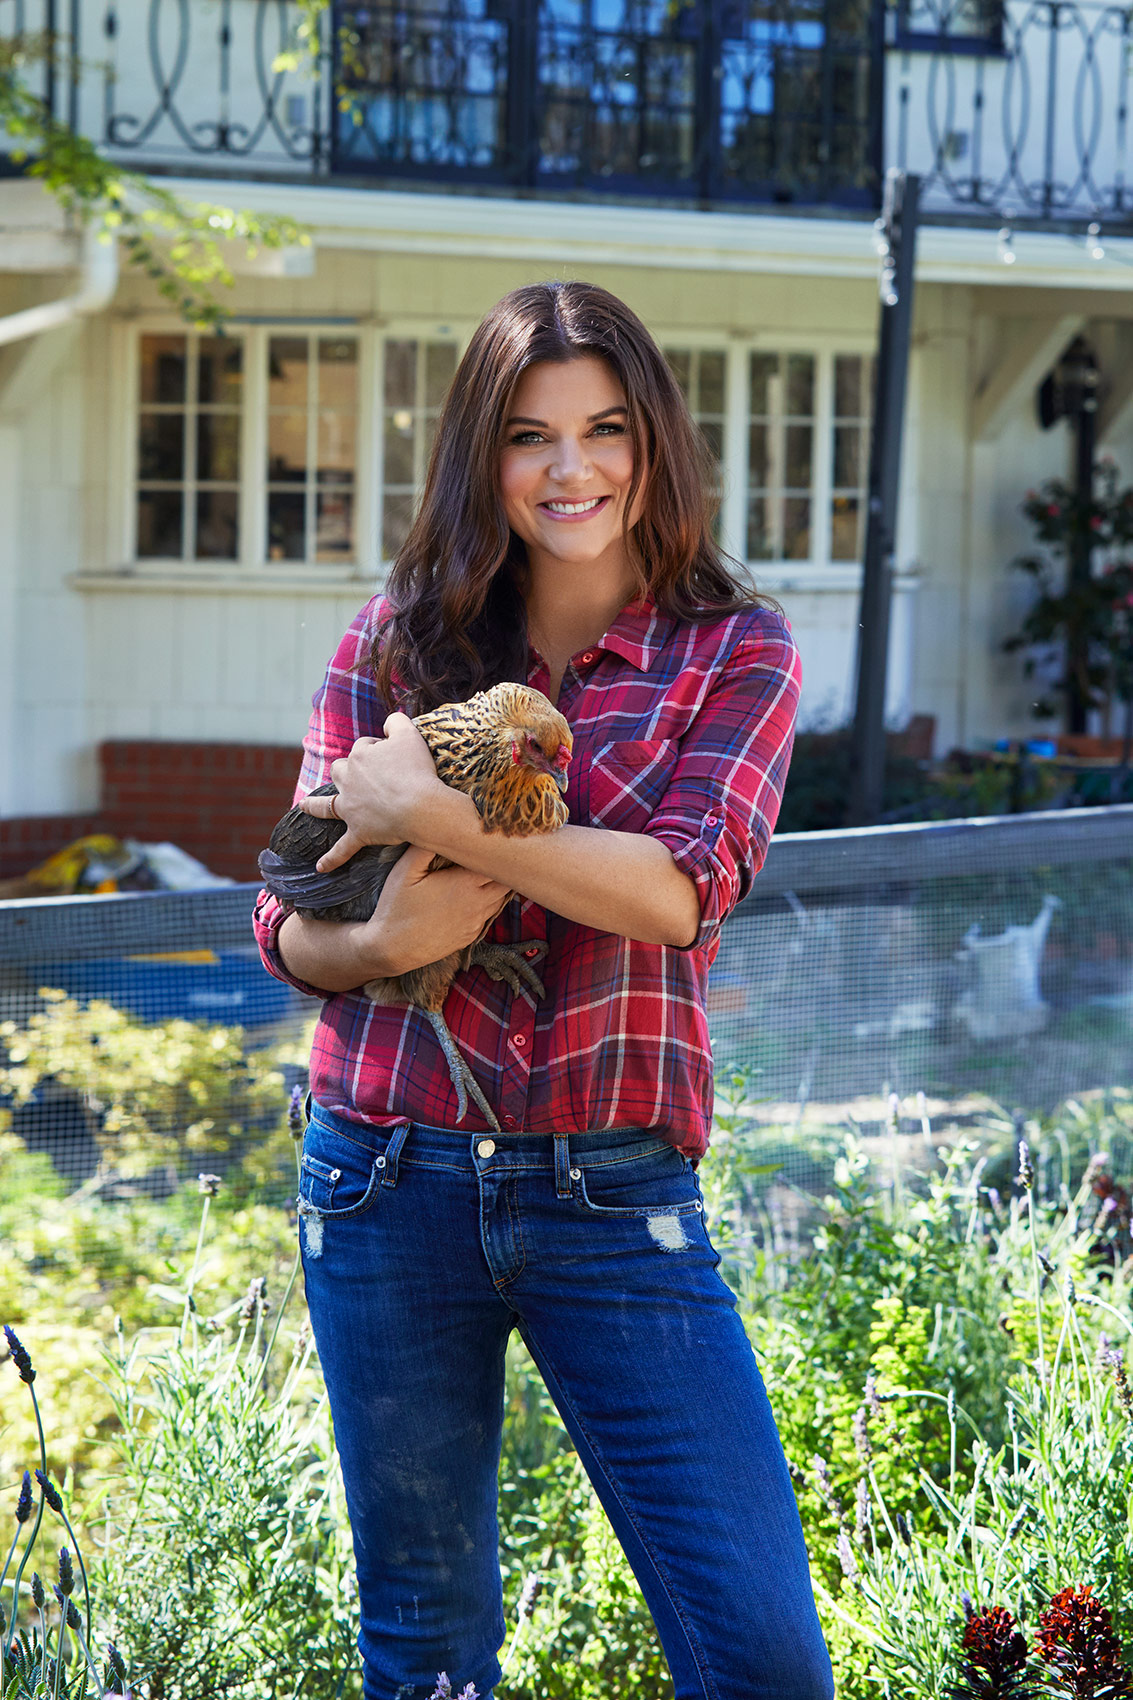 Kimberly_Genevieve_Tiffani_Thiessen_09